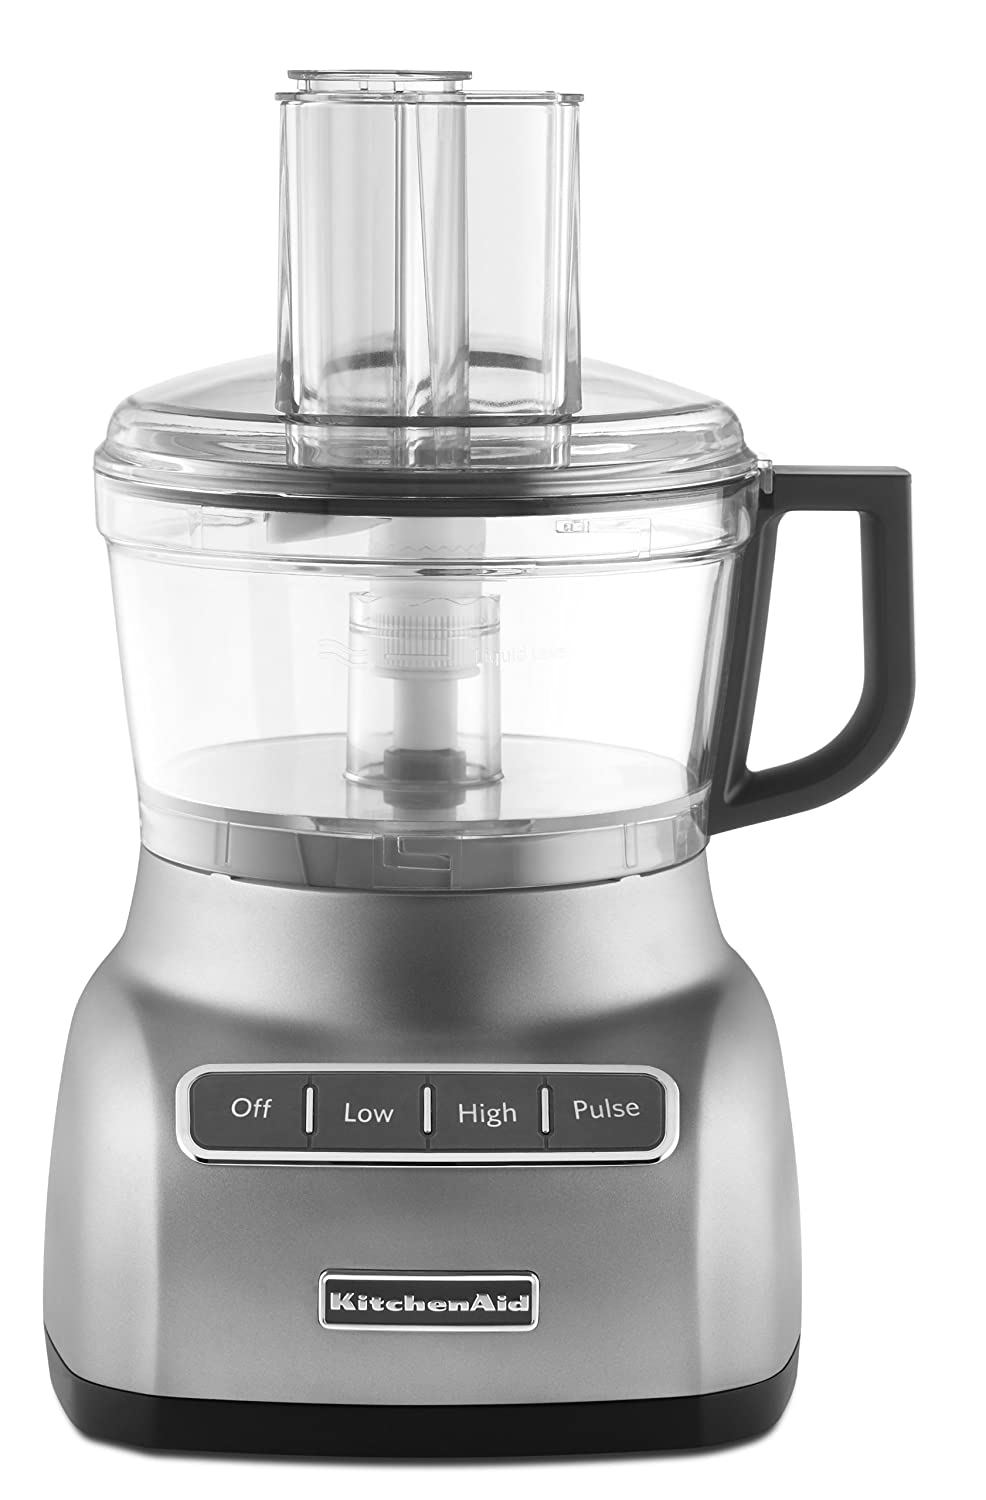 Best Food Processor 2020: The 5 Most Top-Rated And Best Selling Products 4